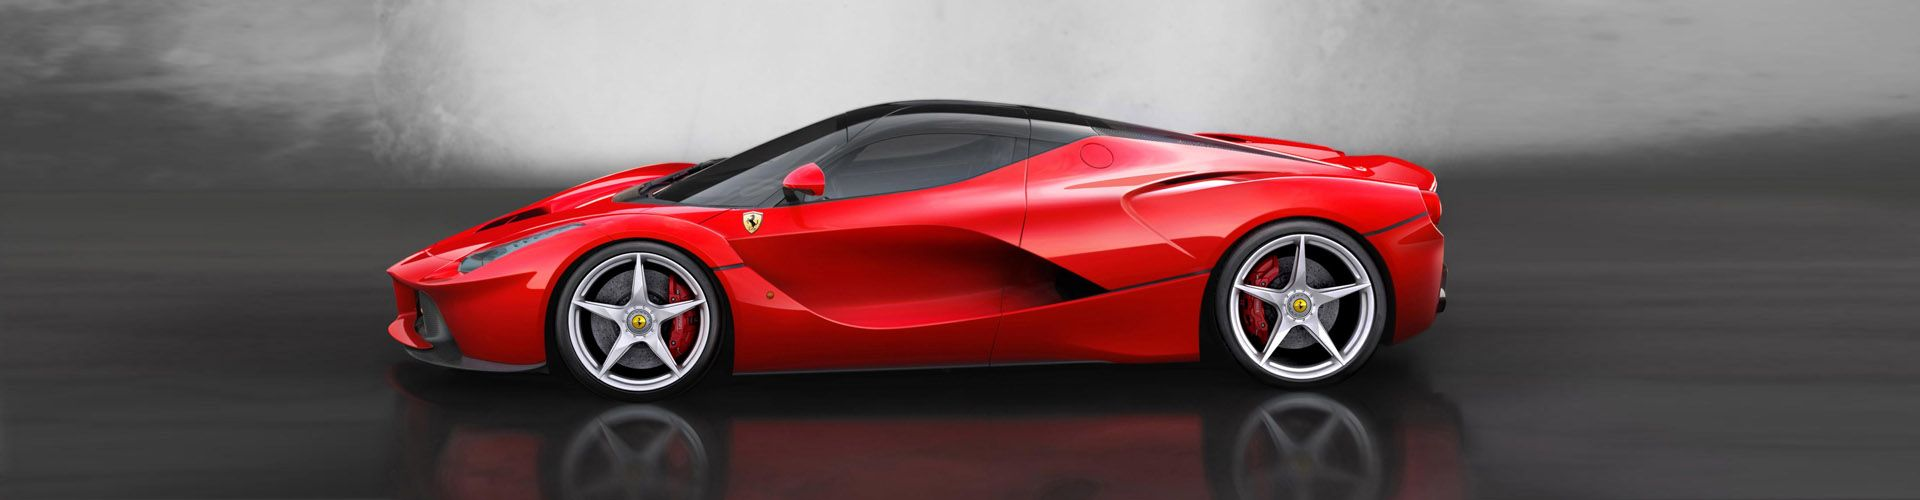 only san rent business antonio ferrari for s a article dallas in rawimage news express family car